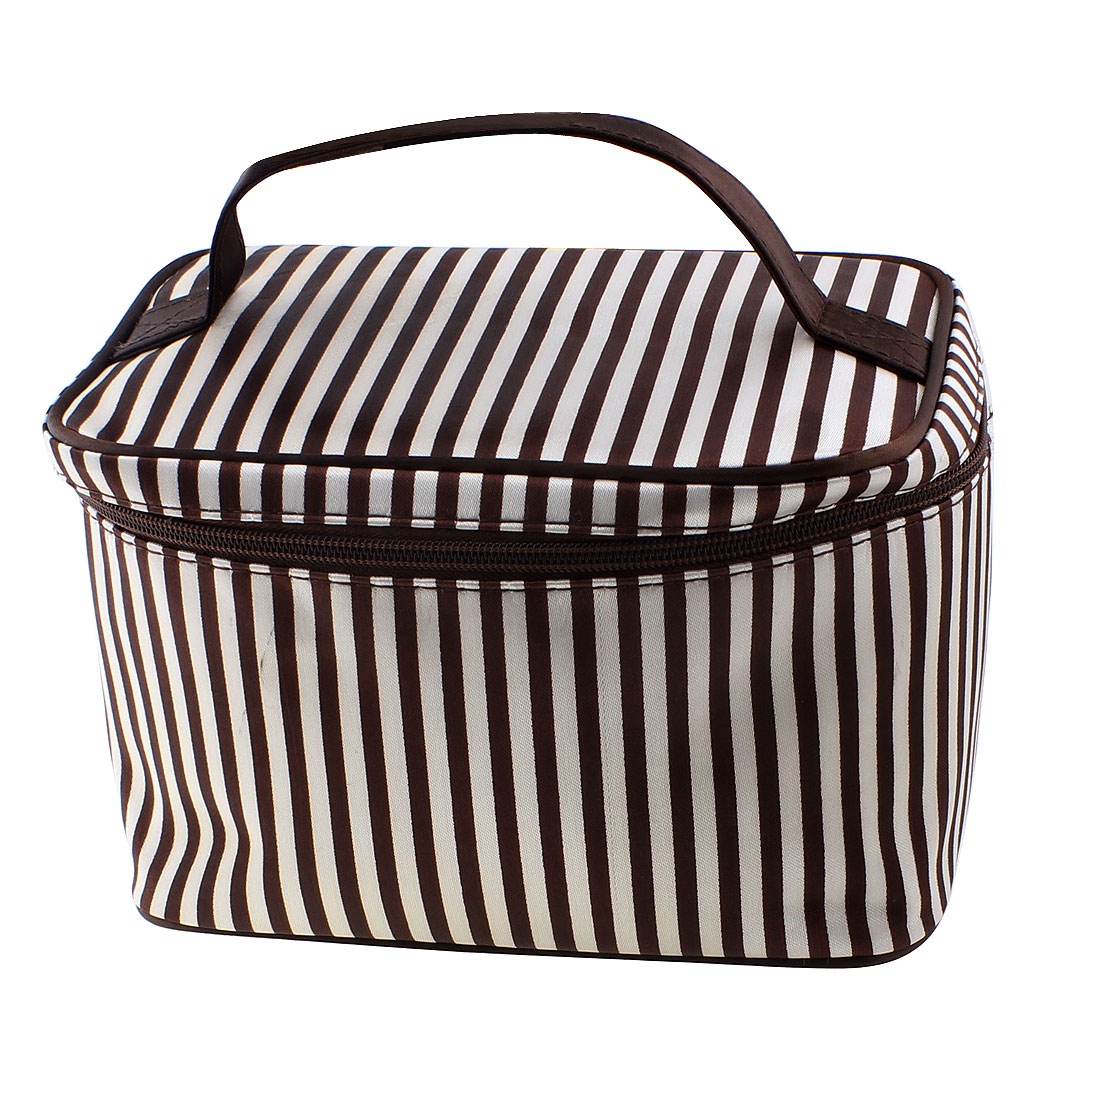 Striped Pattern Zippered Cosmetic Makeup Storage Case Organizer Bag Pouch Brown